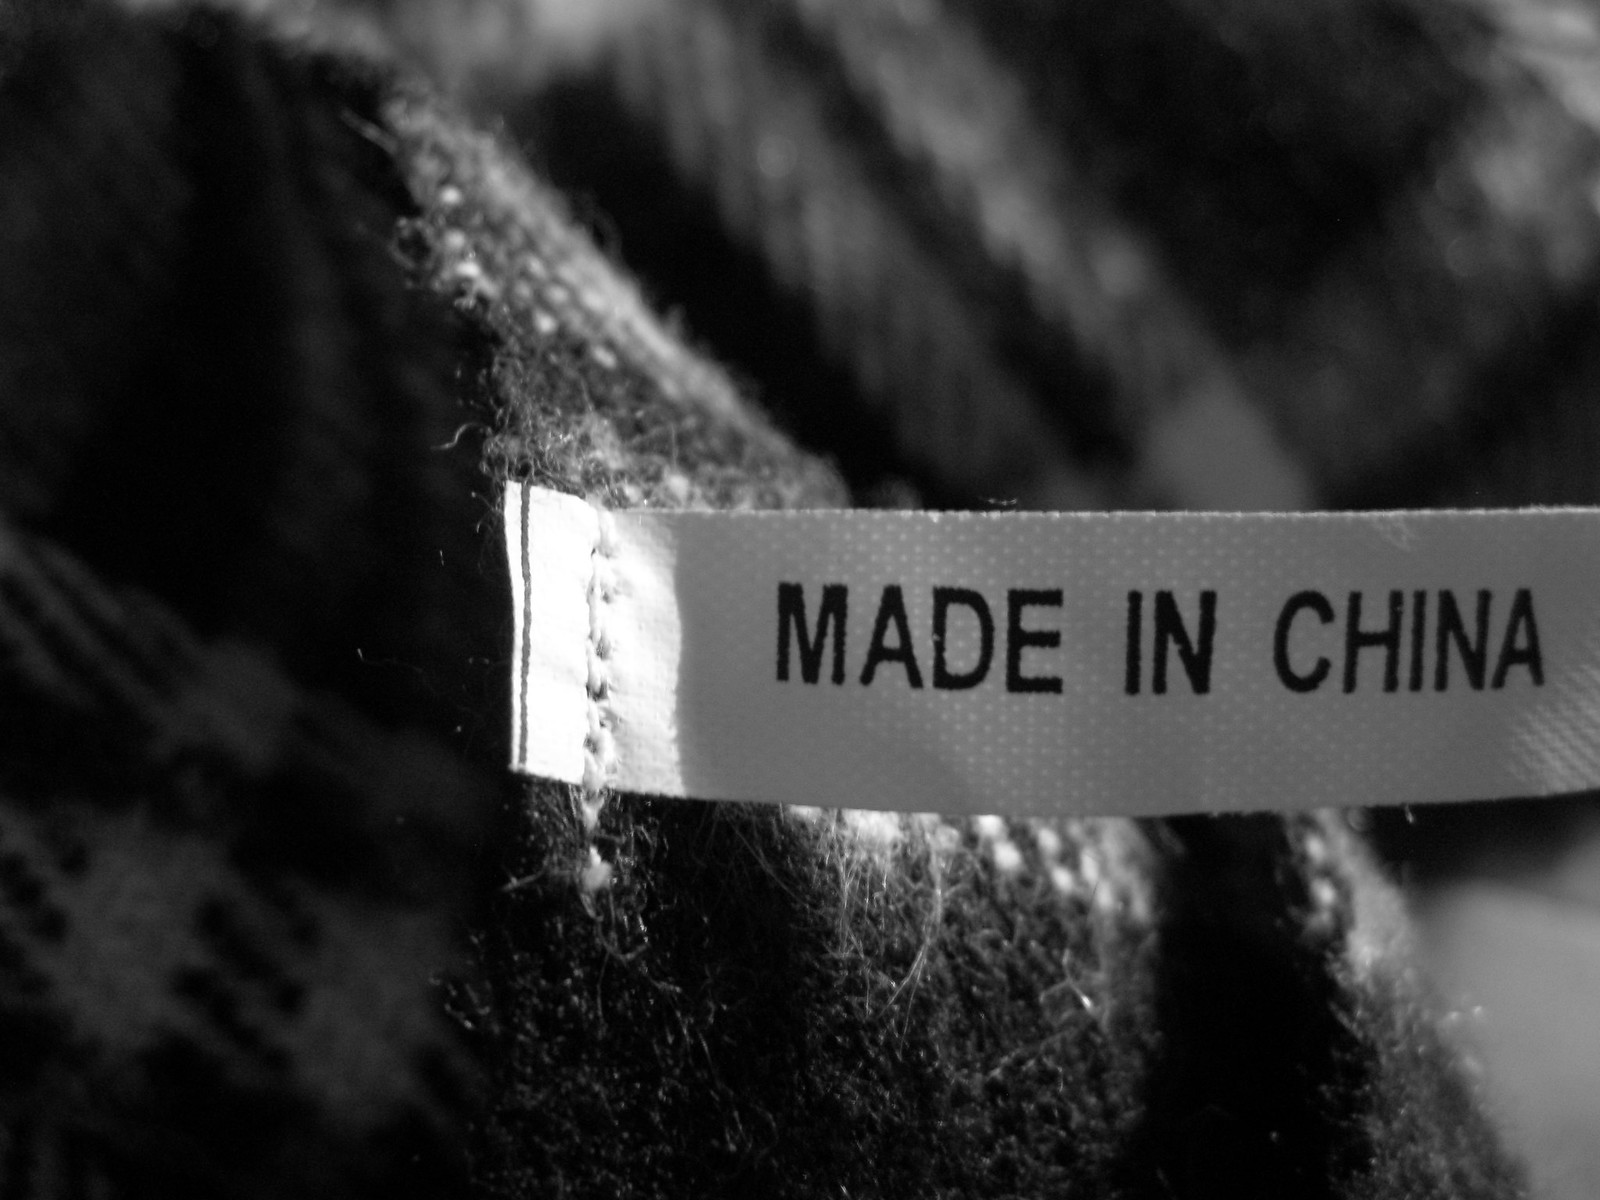 made in...